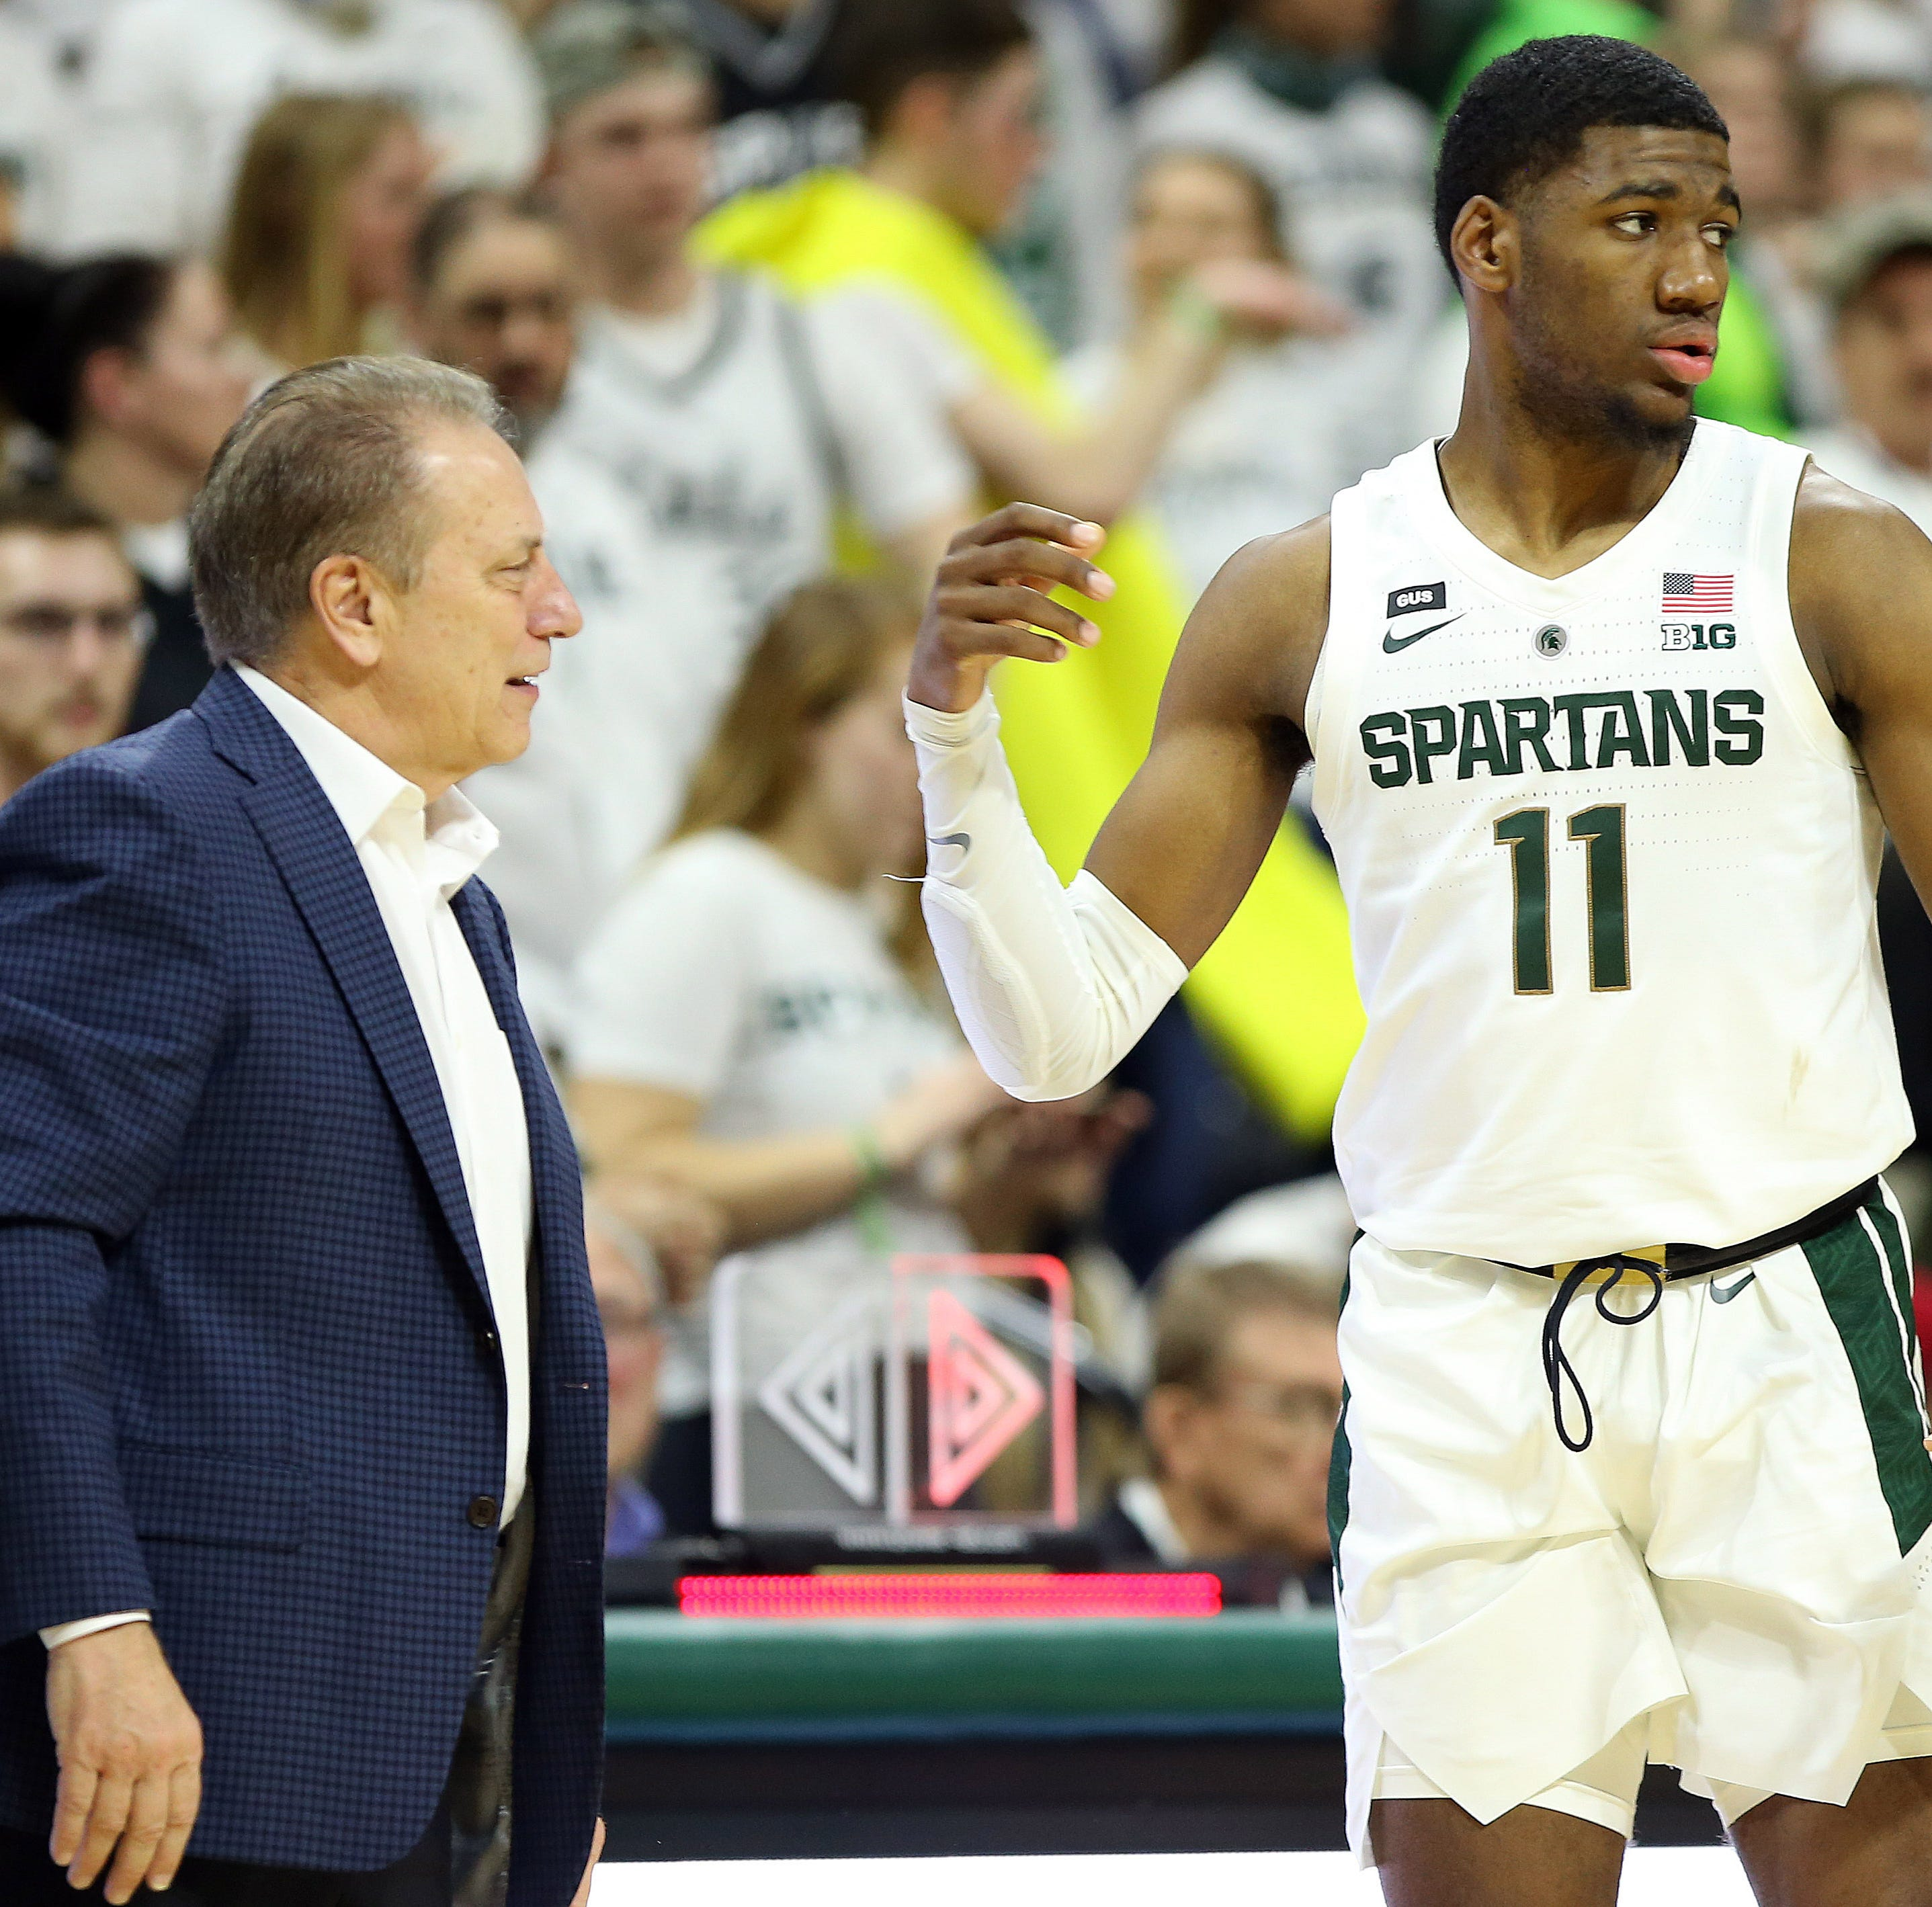 Couch: 3 quick takes on Michigan State basketball's rally over Rutgers – and what's ahead